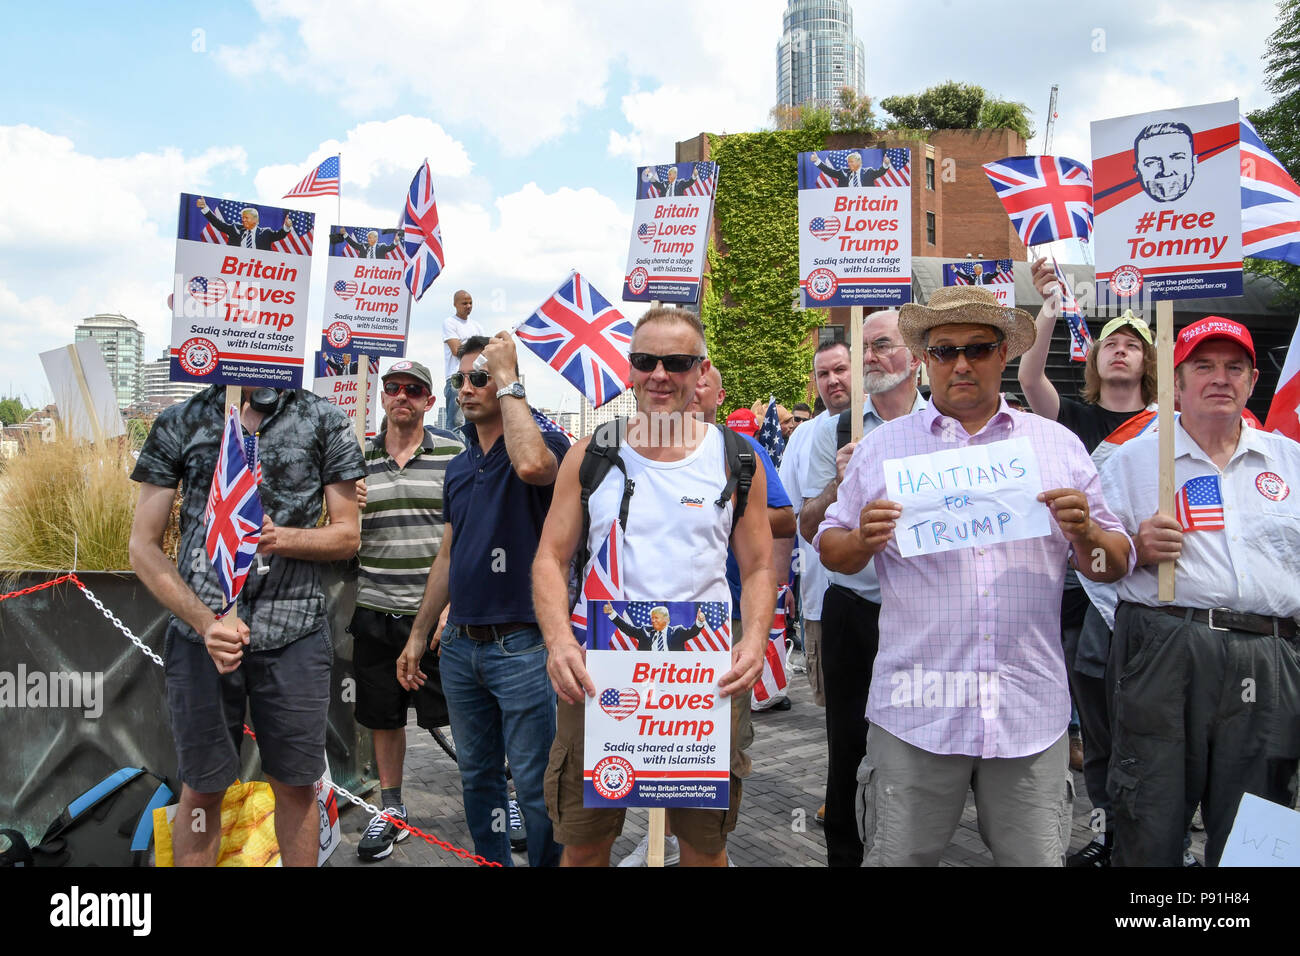 Image result for make britain great again placards